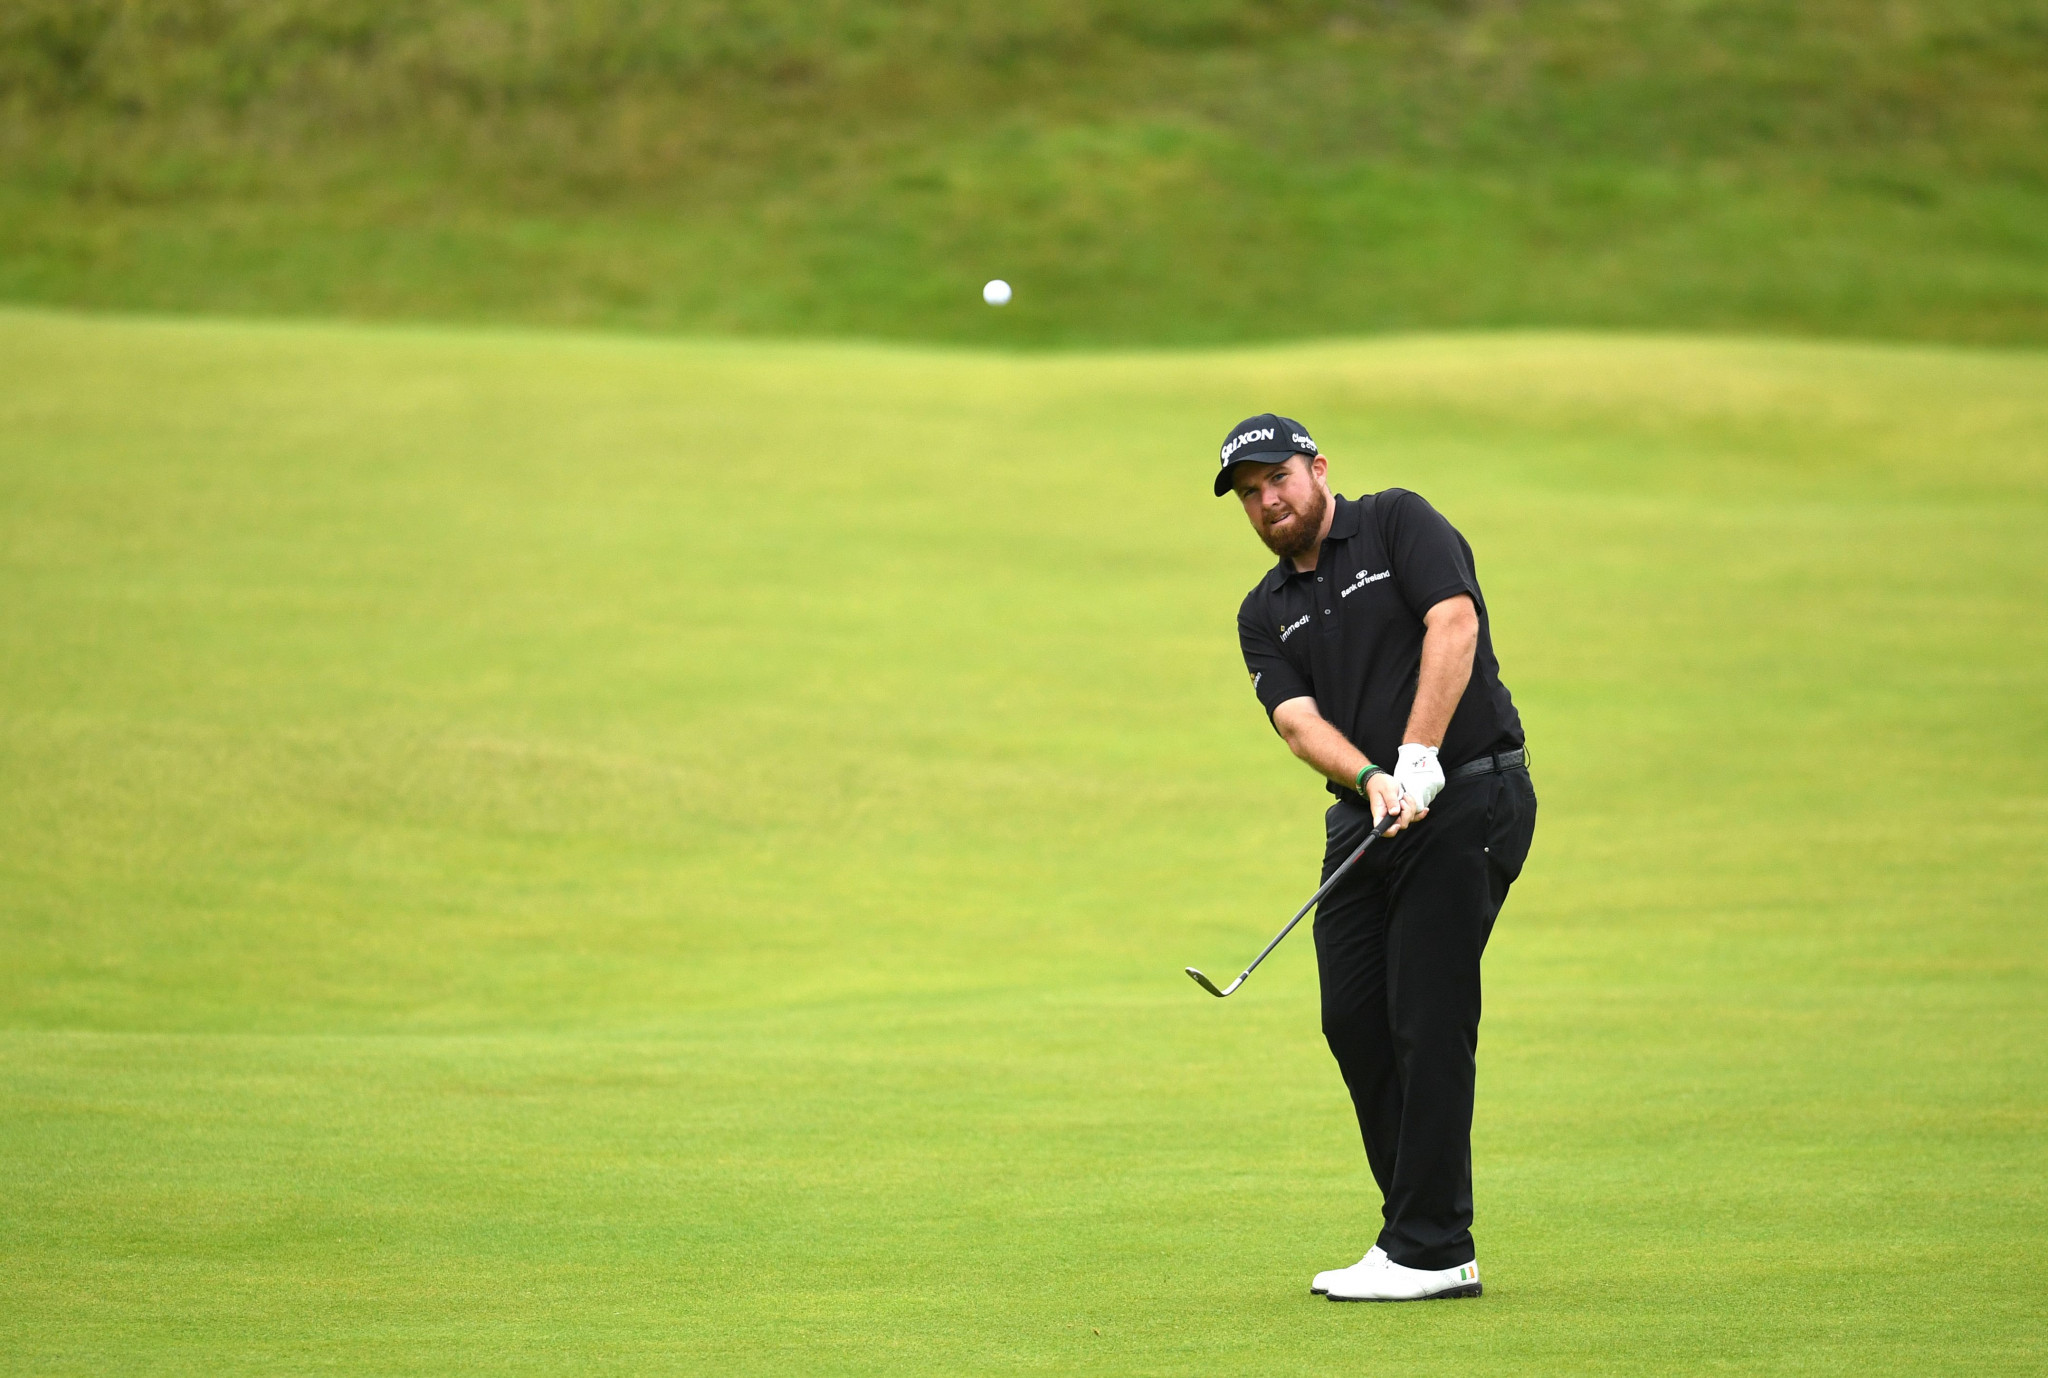 Holmes and Lowry tied for lead after second round at The Open